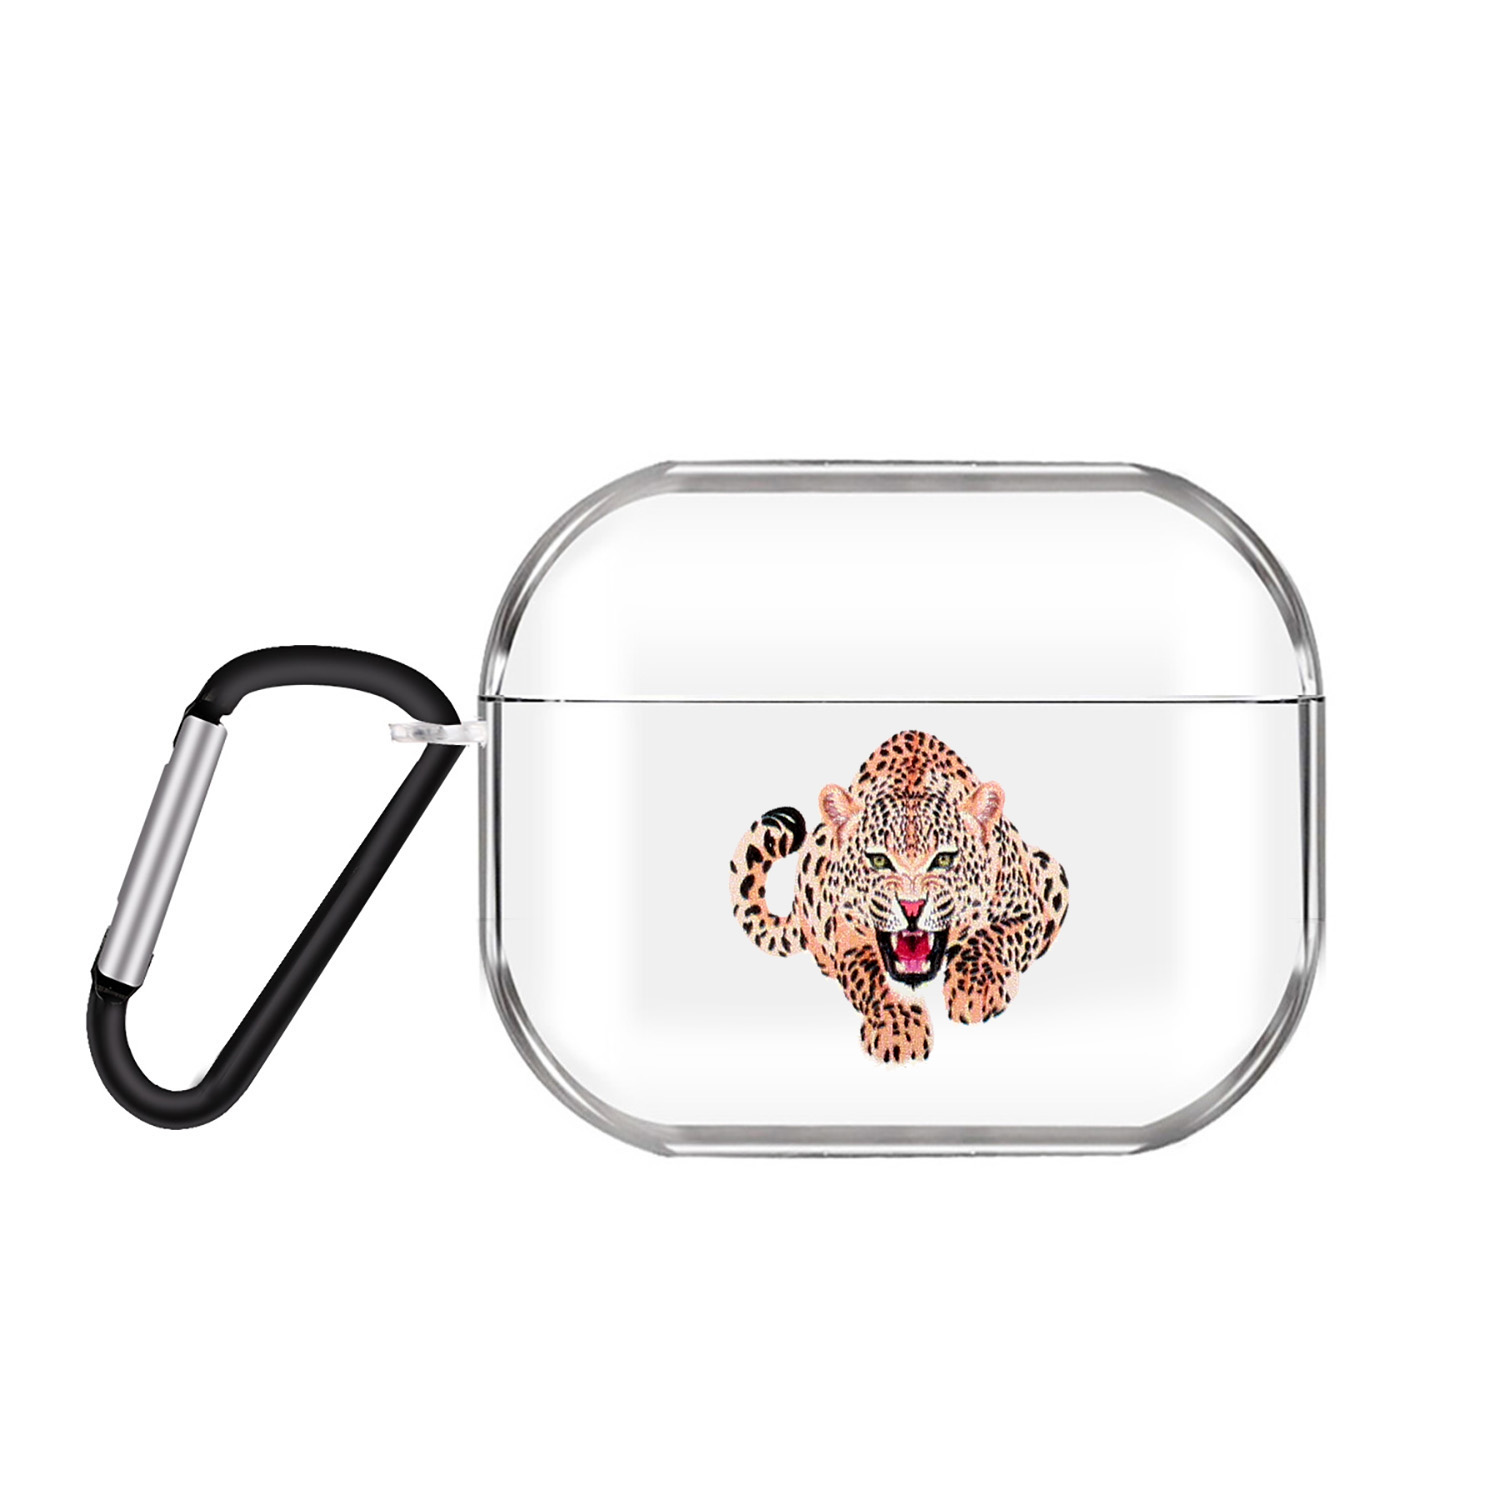 For AirPods Pro Headphones Case Full Protection Clear Cute Earphone Shell with Metal Hook 1 Music Elephant